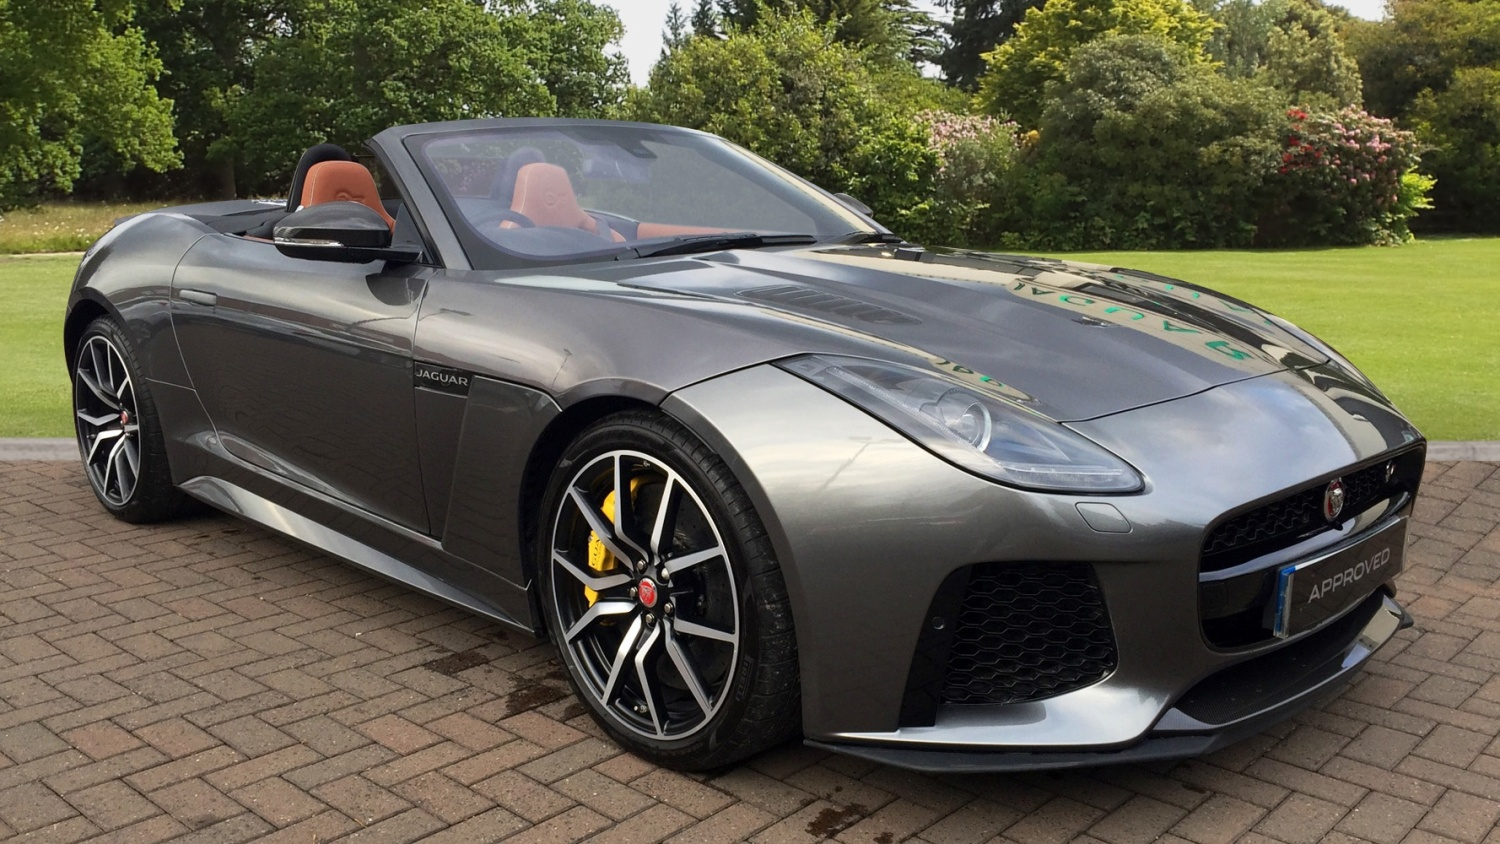 used jaguar f type 5 0 supercharged v8 svr 2dr auto awd petrol convertible for sale farnell jaguar. Black Bedroom Furniture Sets. Home Design Ideas